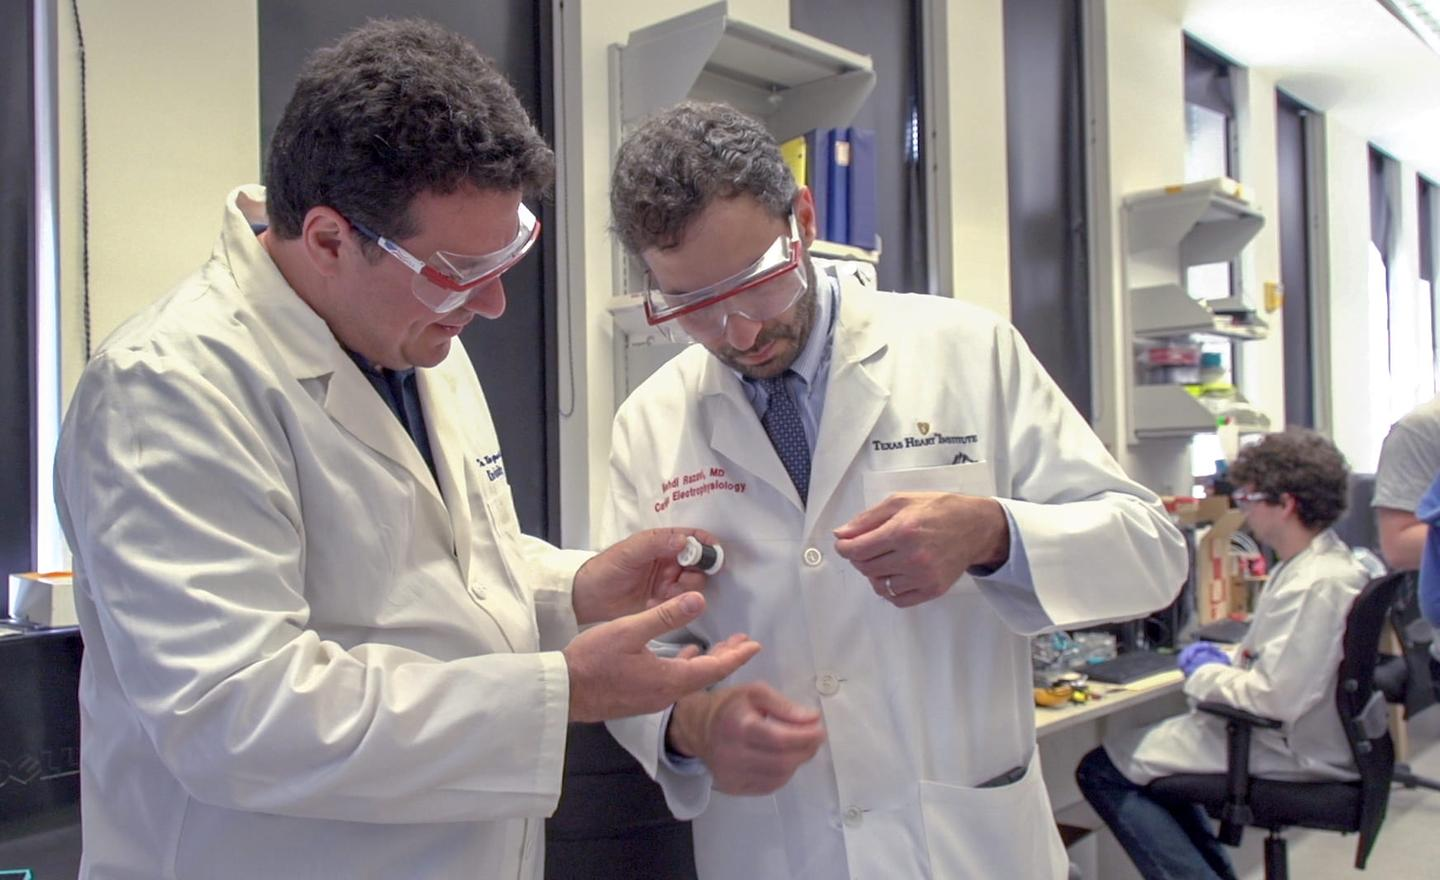 Dr. Mehdi Razavi (right) checks a thread of carbon nanotube fiber with study co-author and Rice Professor Matteo Pasquali